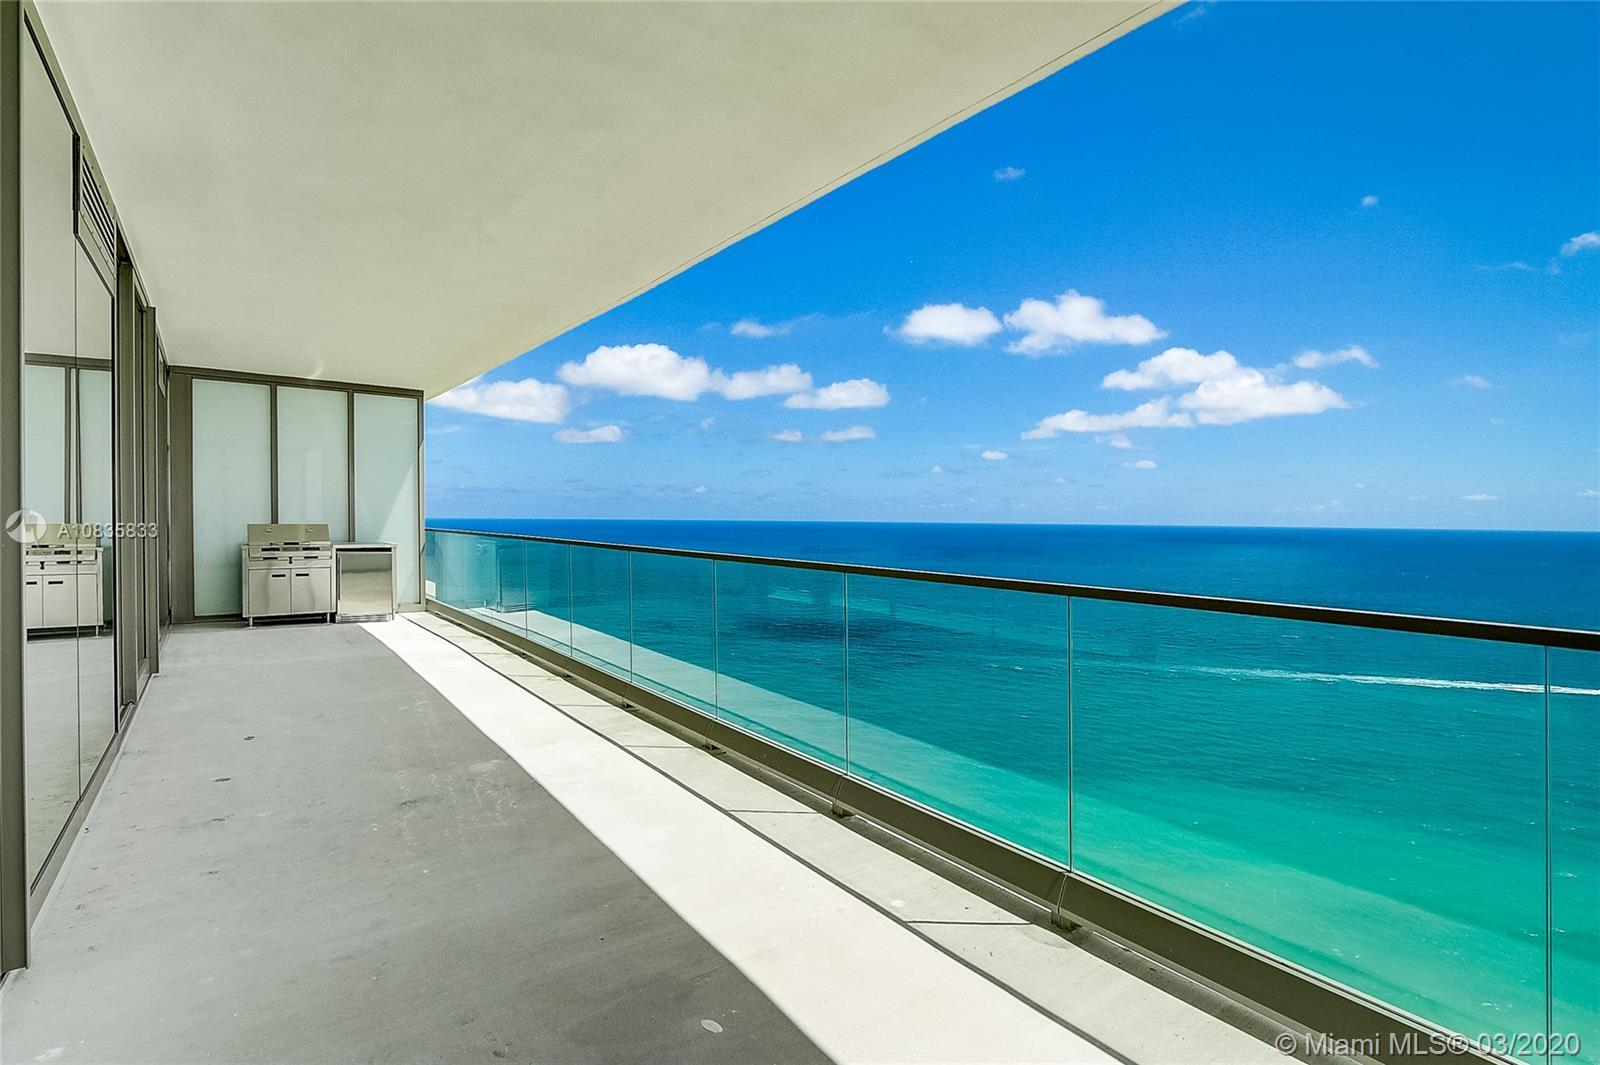 Brand New Residences By Armani Oceanfront unit! 4 bedrooms, 5.5 bathroom + den boasting a total of 4